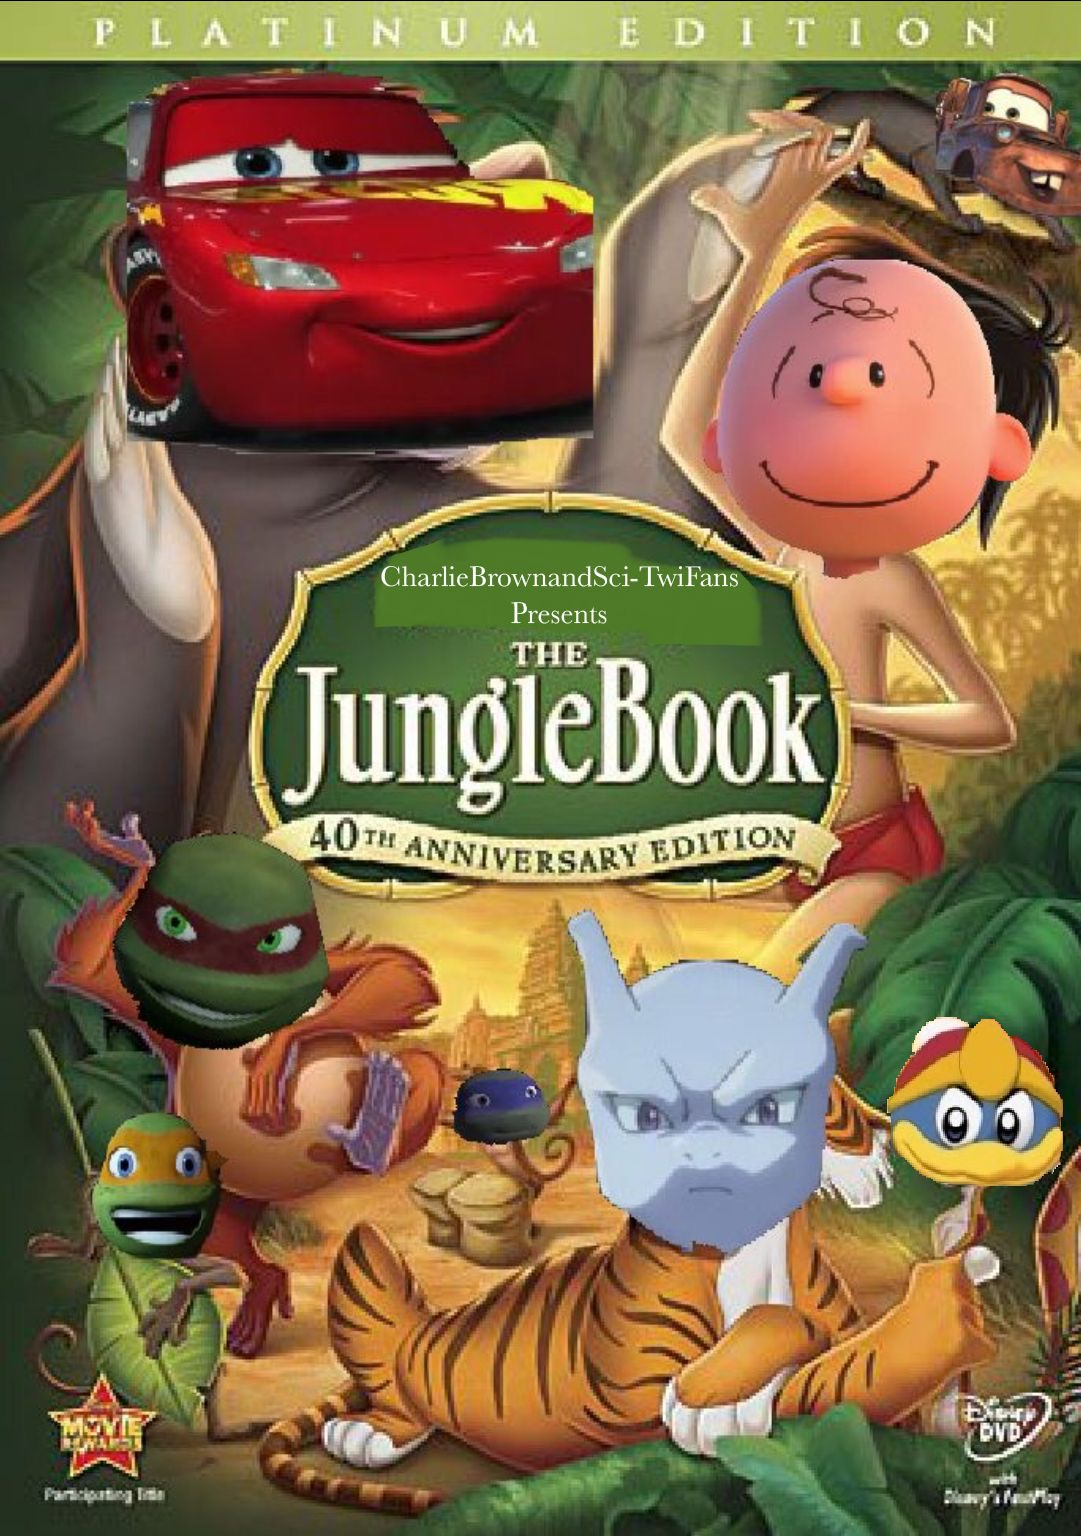 The Jungle Book (1967; CharlieBrownandSci-TwiFans Style)